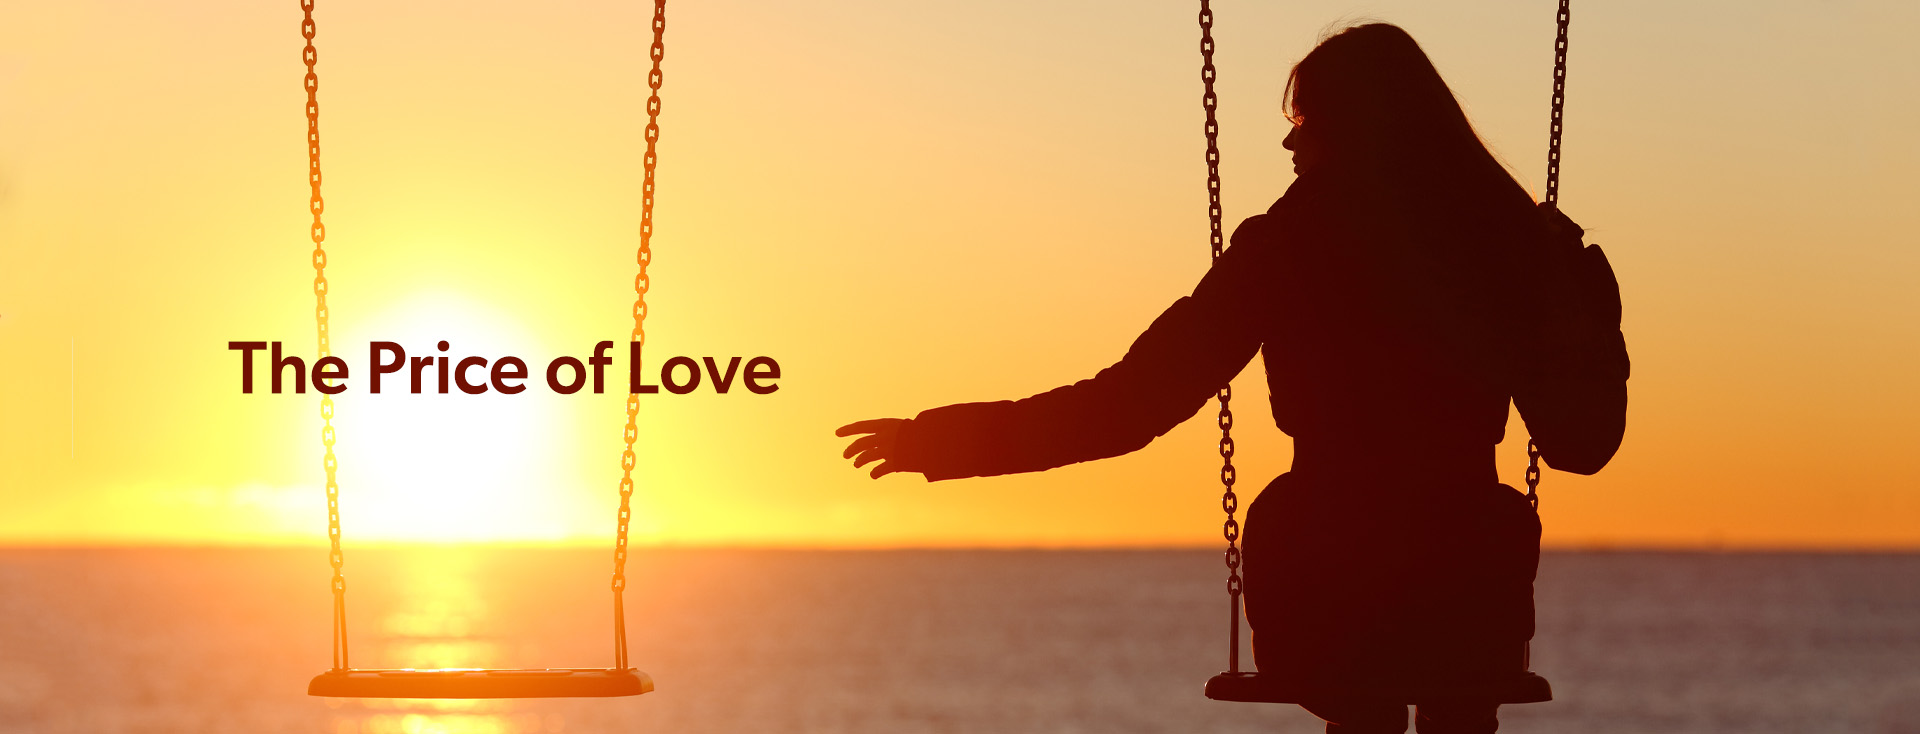 The Price of Love: Dealing with grief